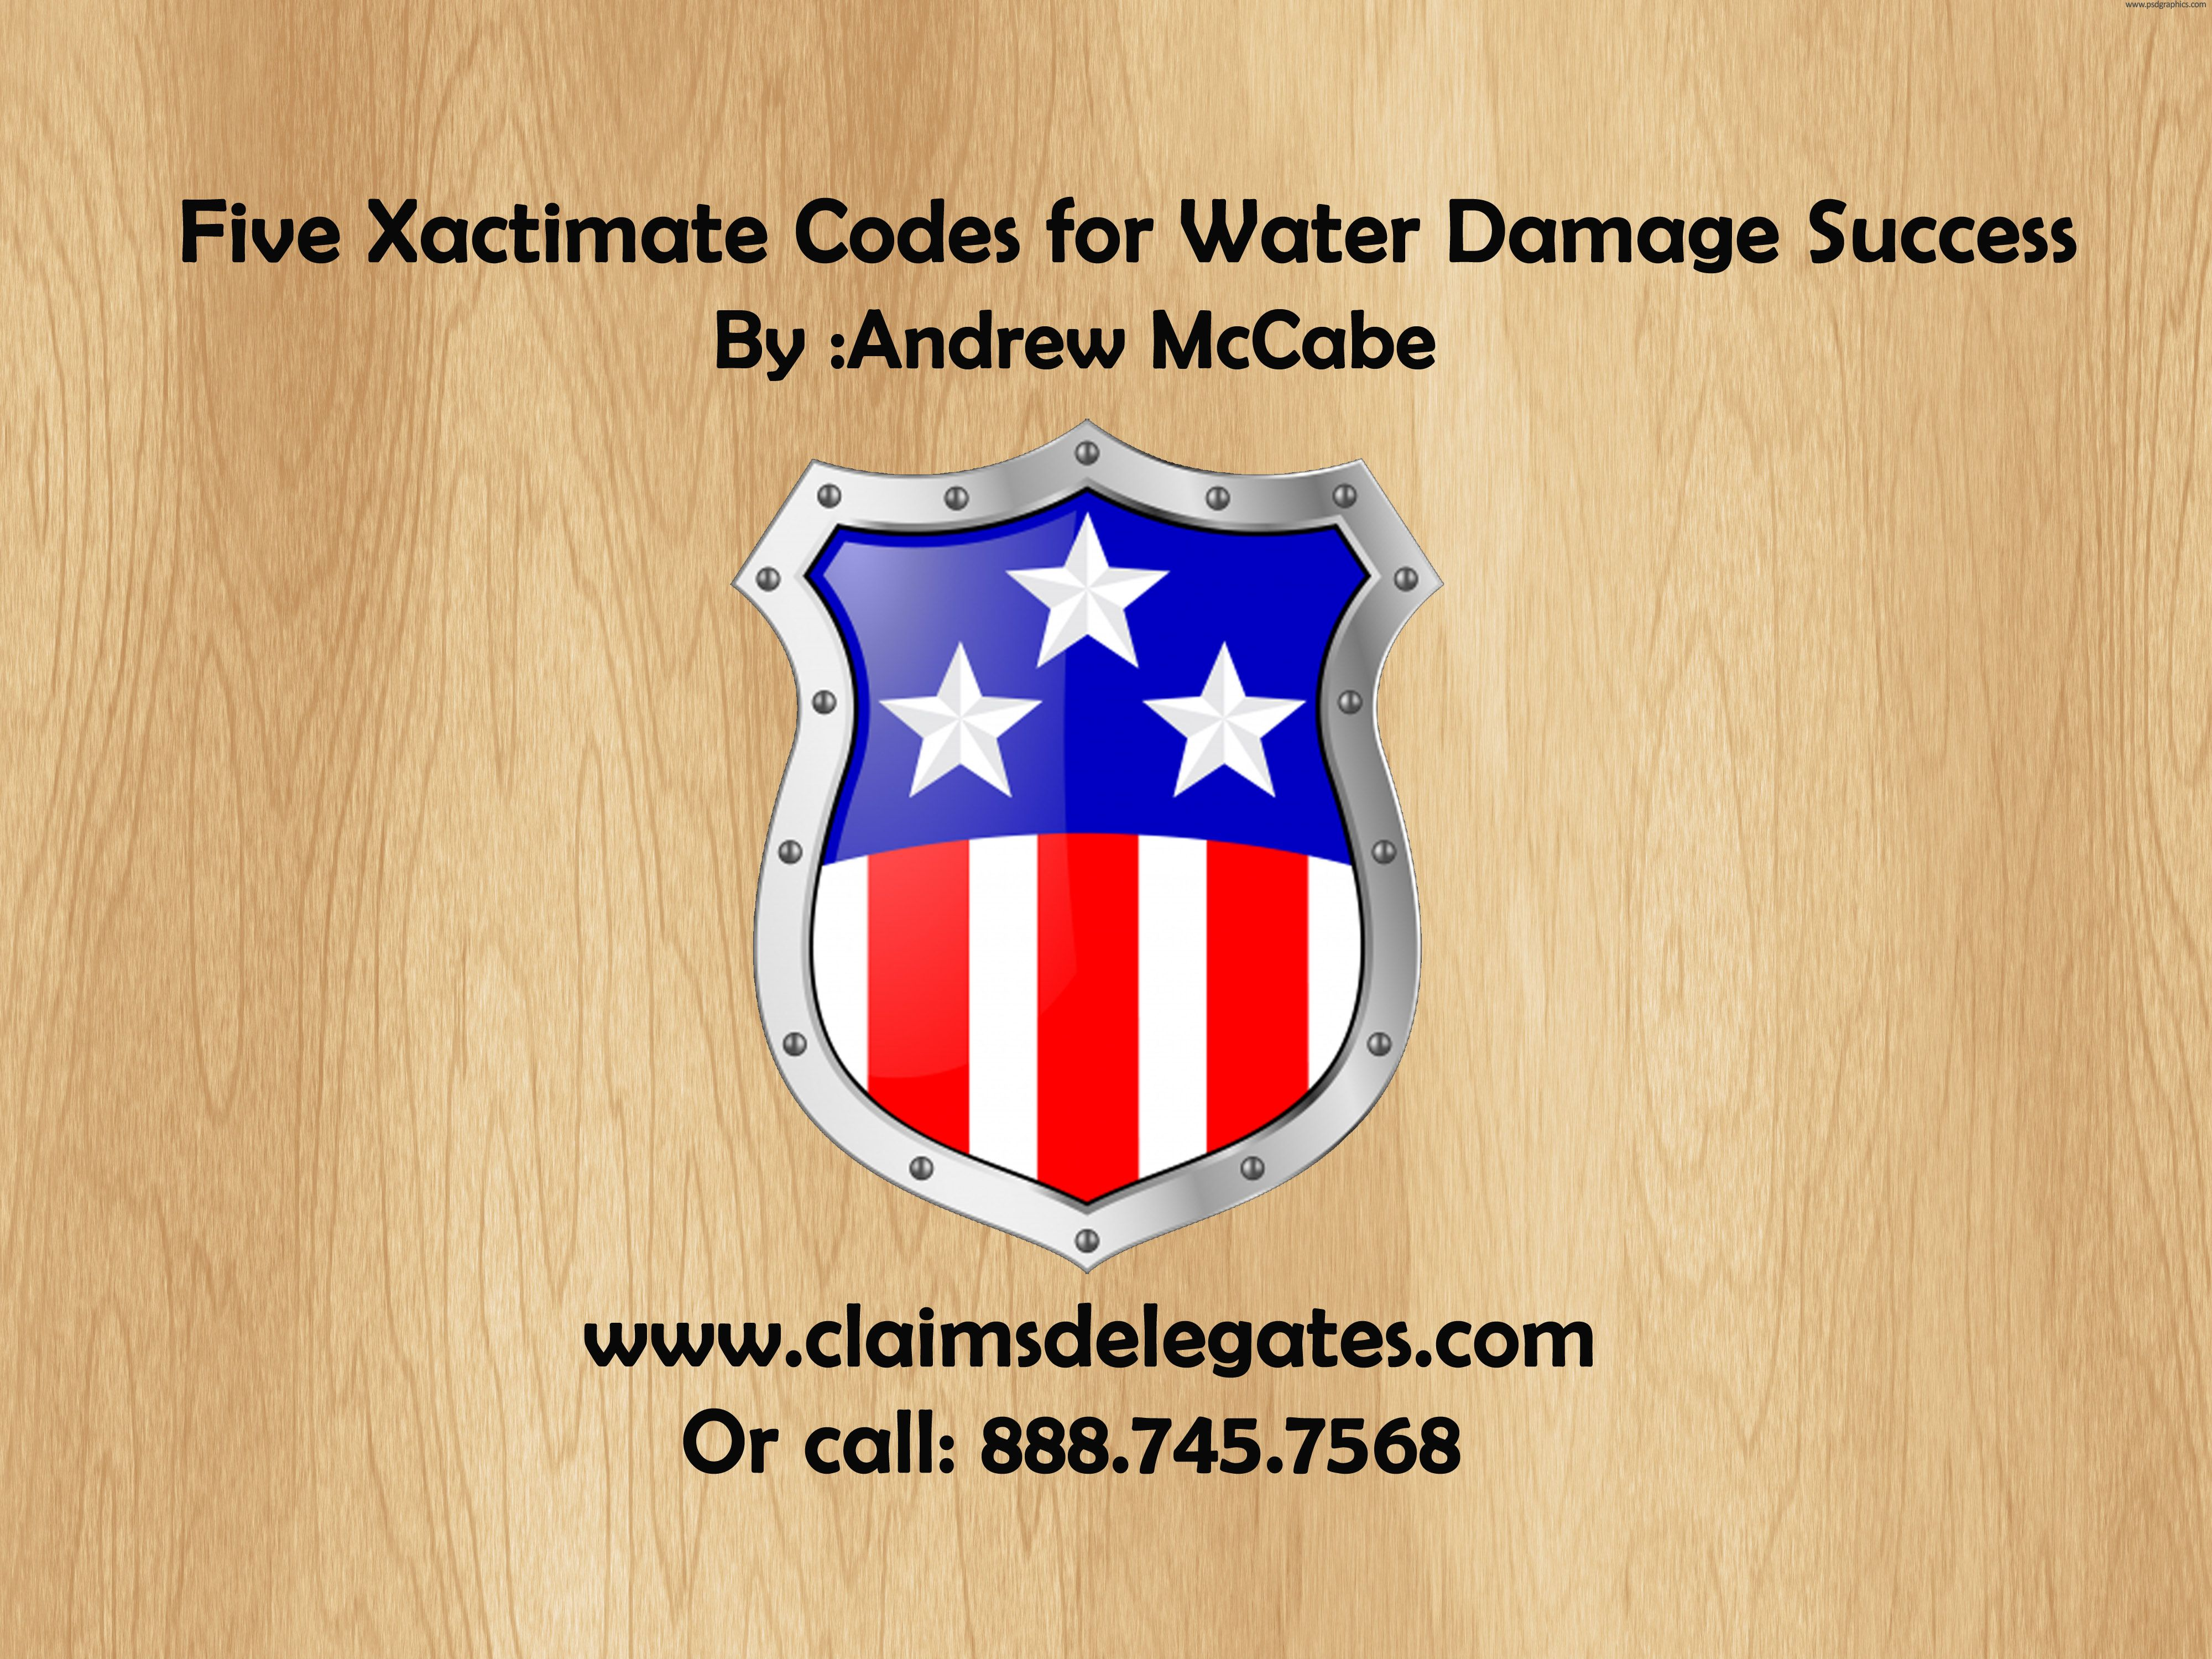 Five Xactimate Codes for Water Damage Success  Here are five